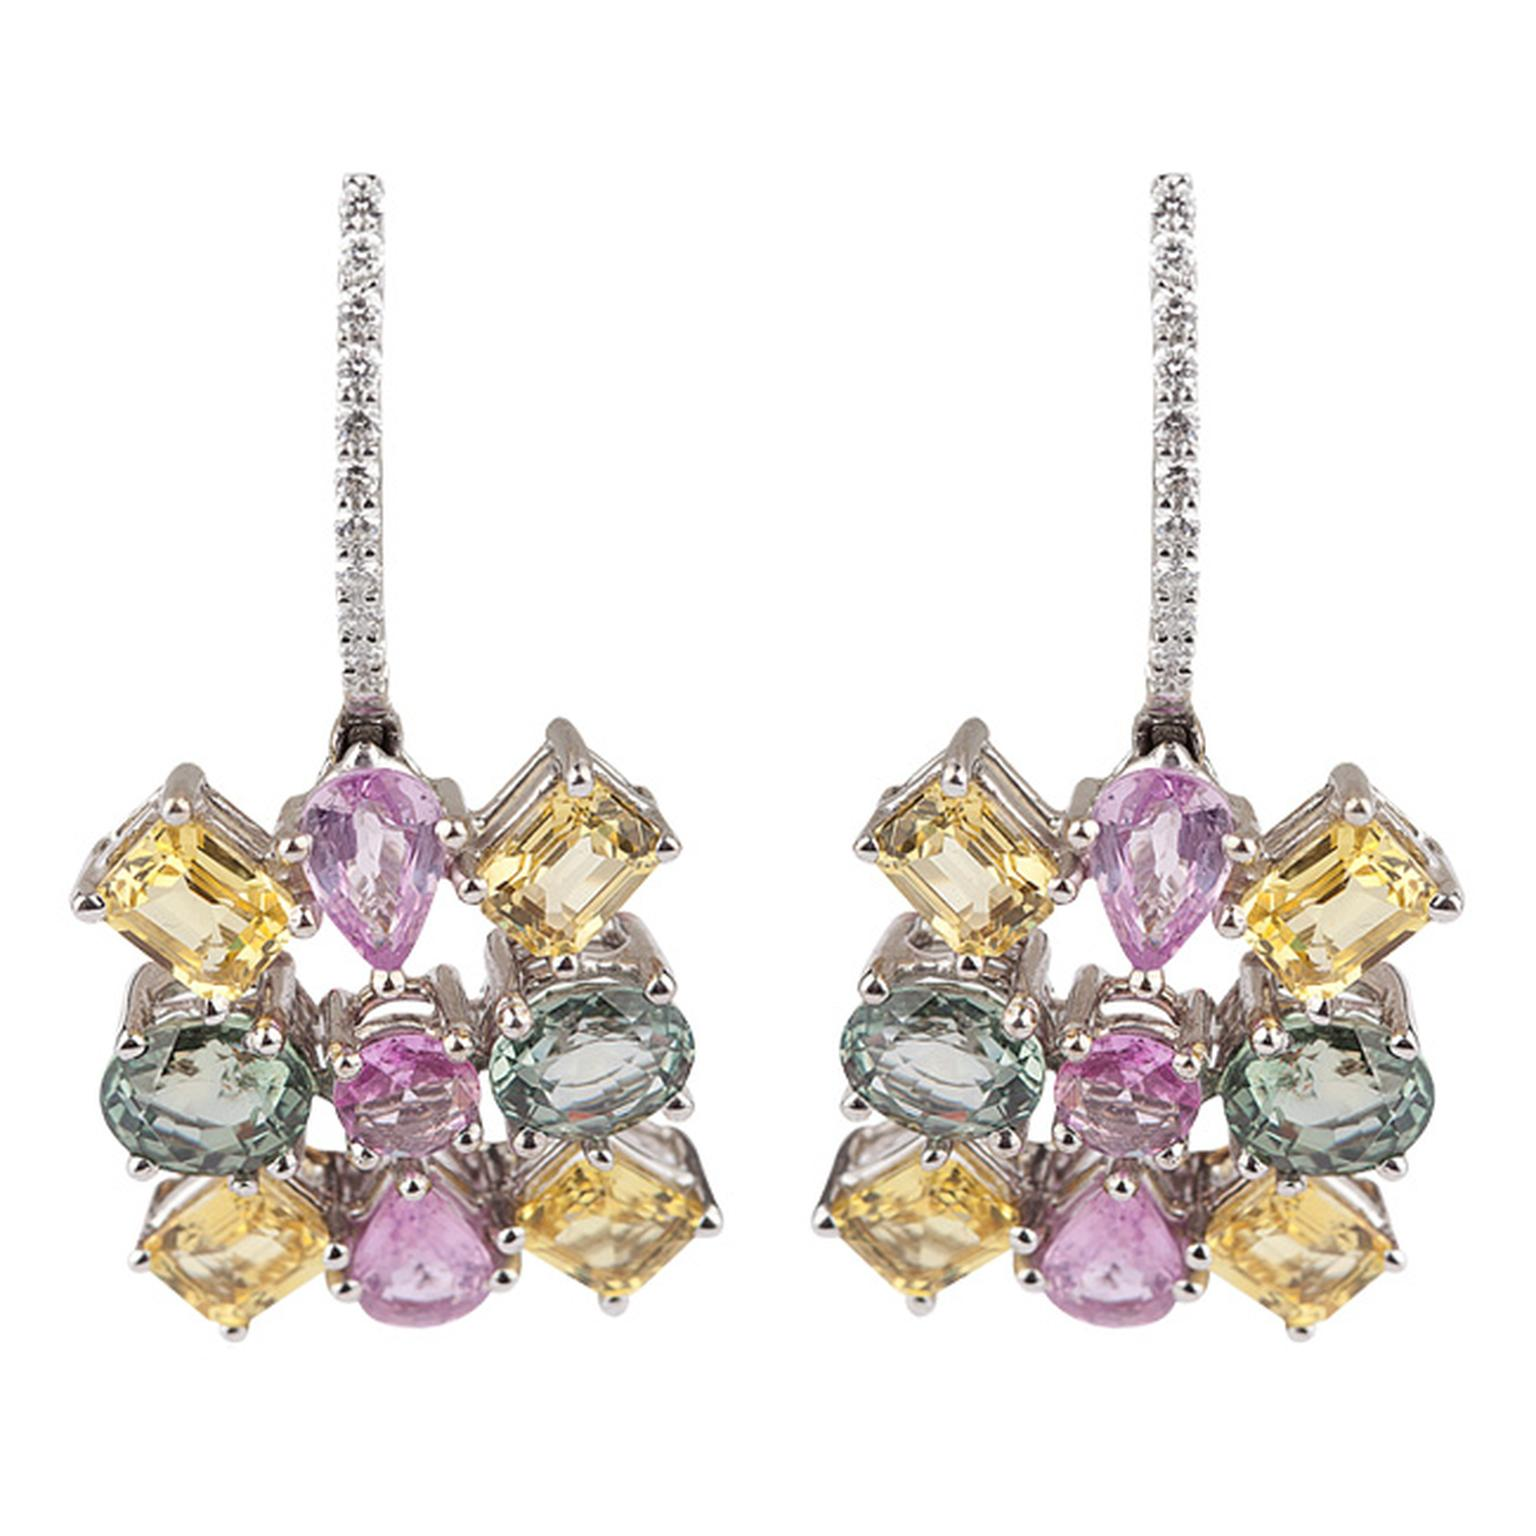 Mirari-white-gold-earrings-with-multi-coloured-sapphires_20140512_Main